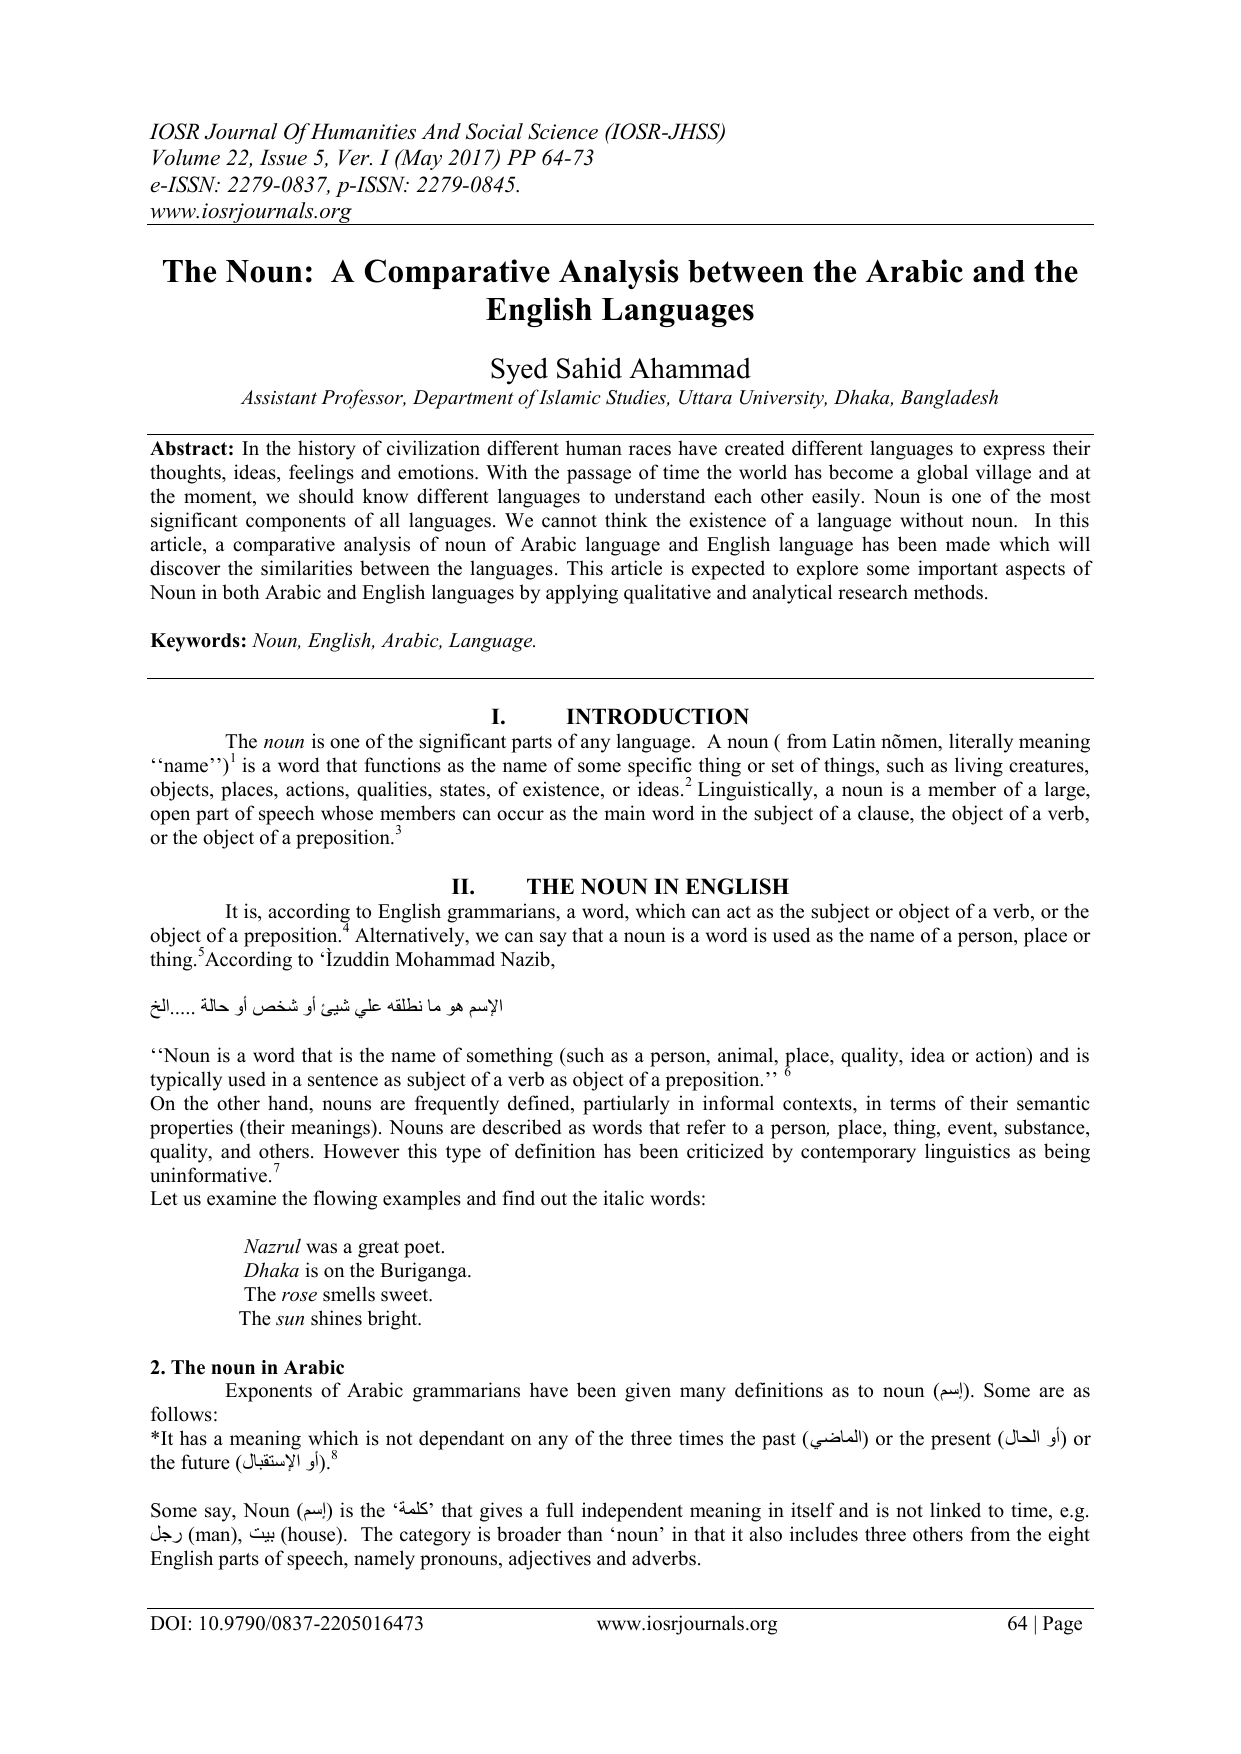 The Noun: A Comparative Analysis between the Arabic and the